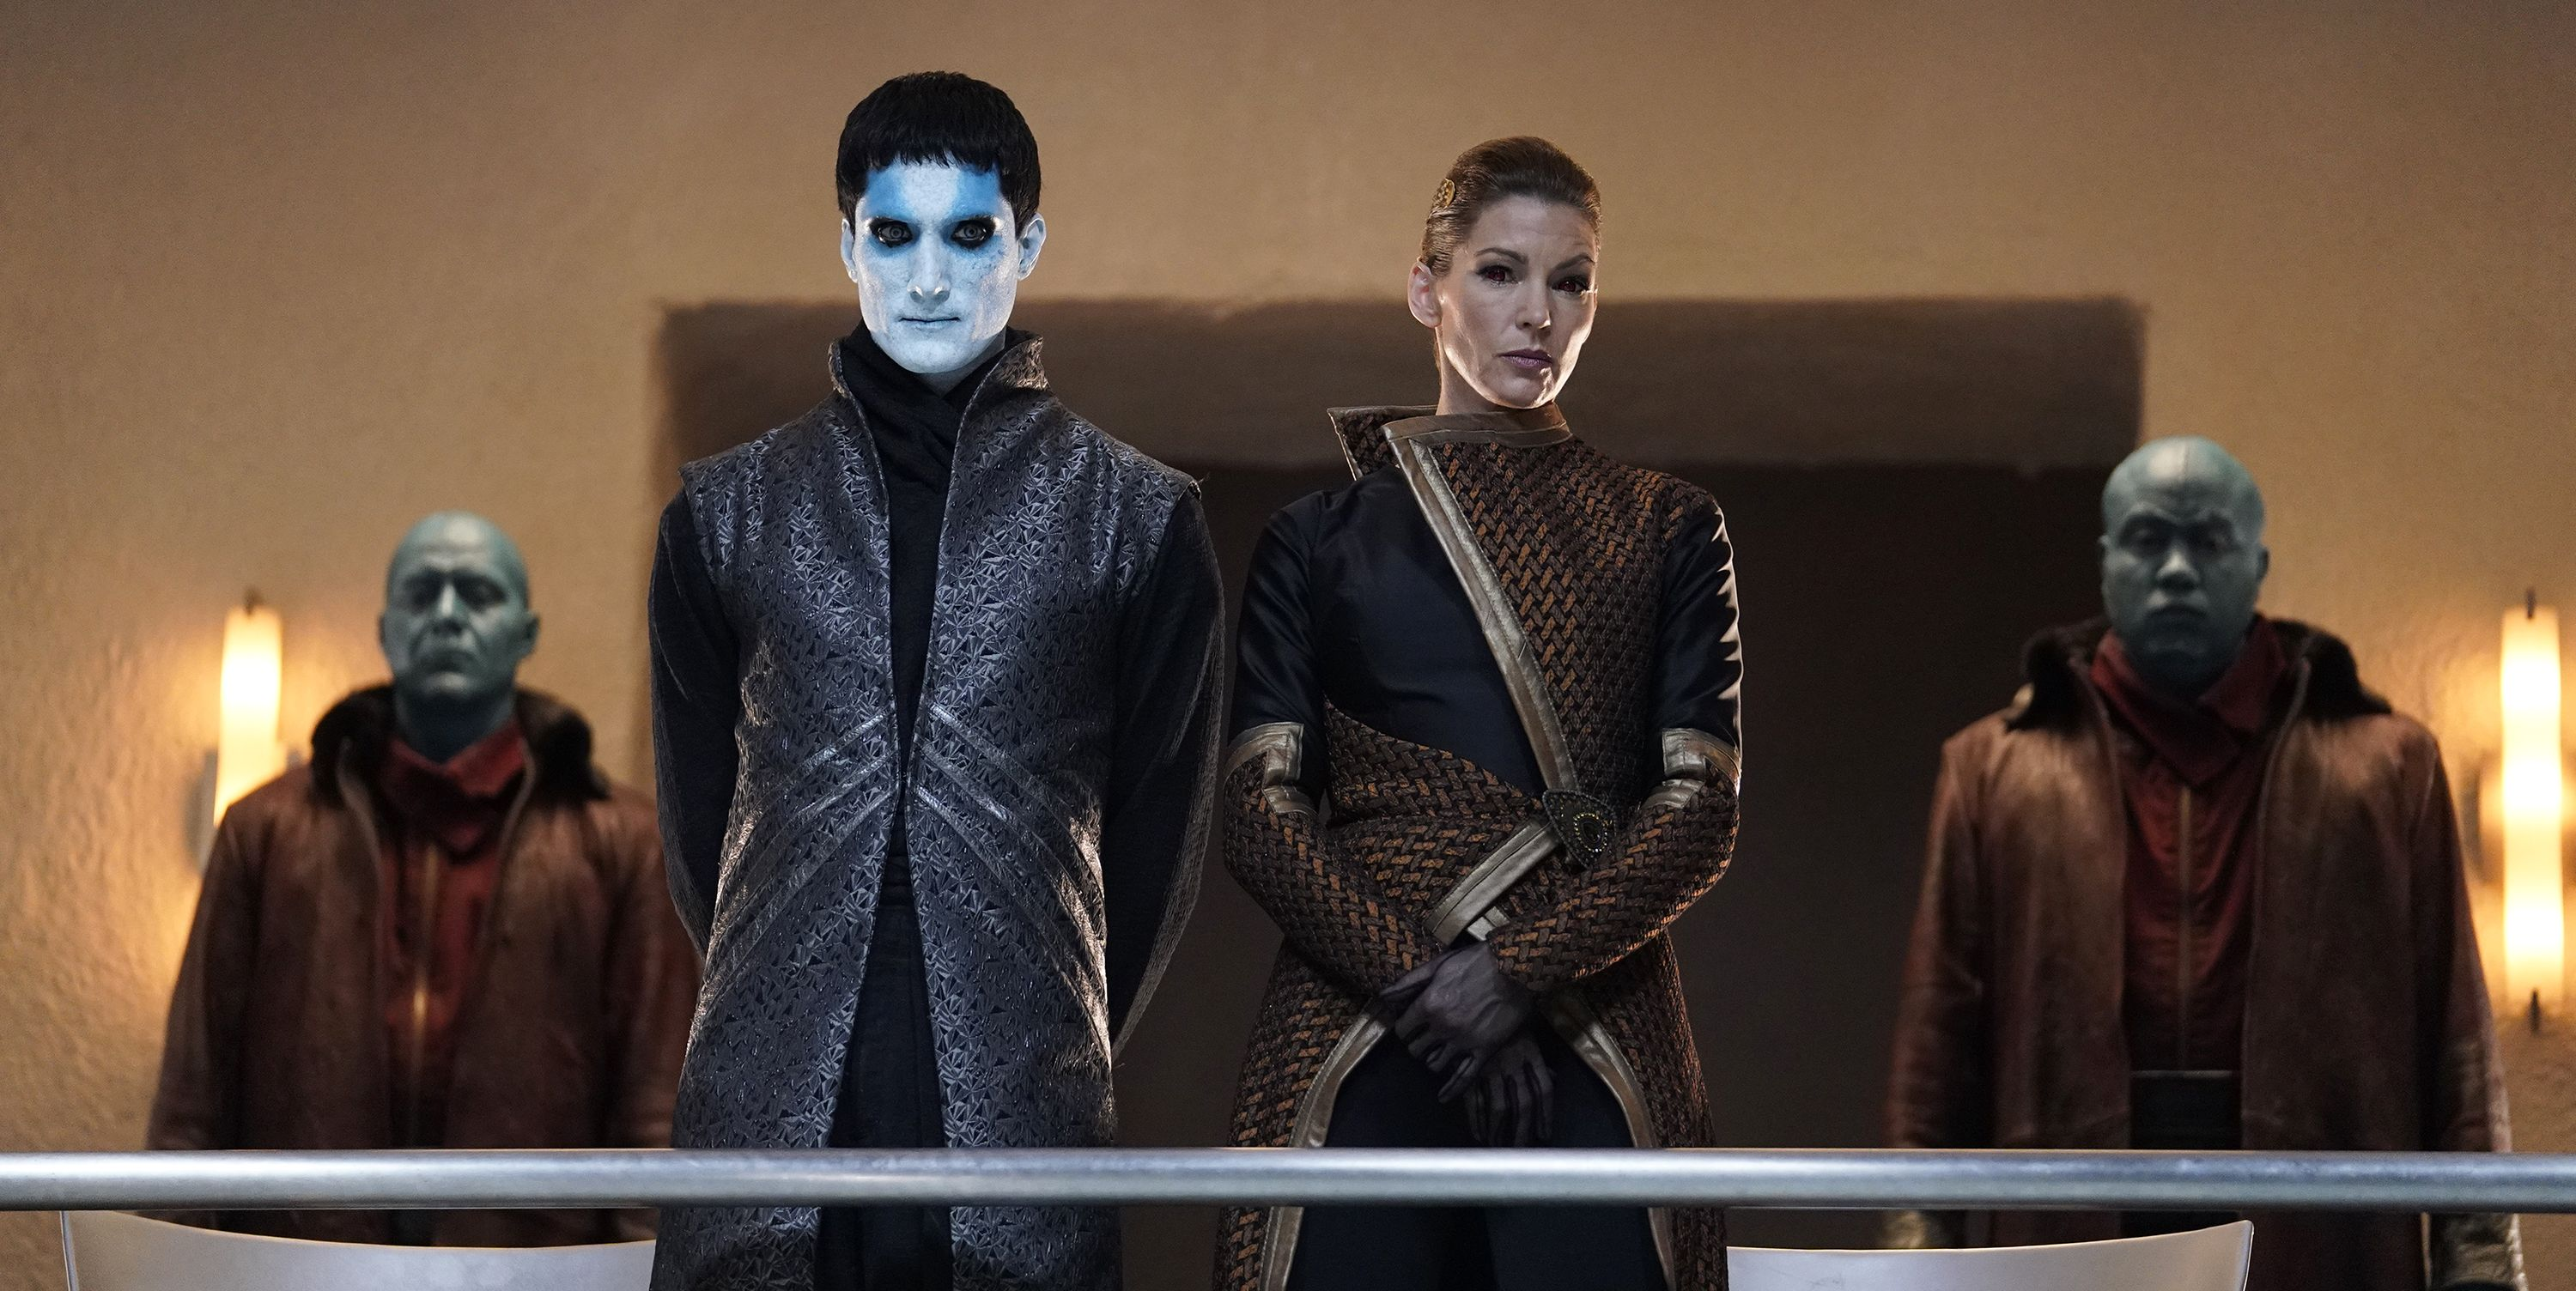 The Kree in Agents of SHIELD